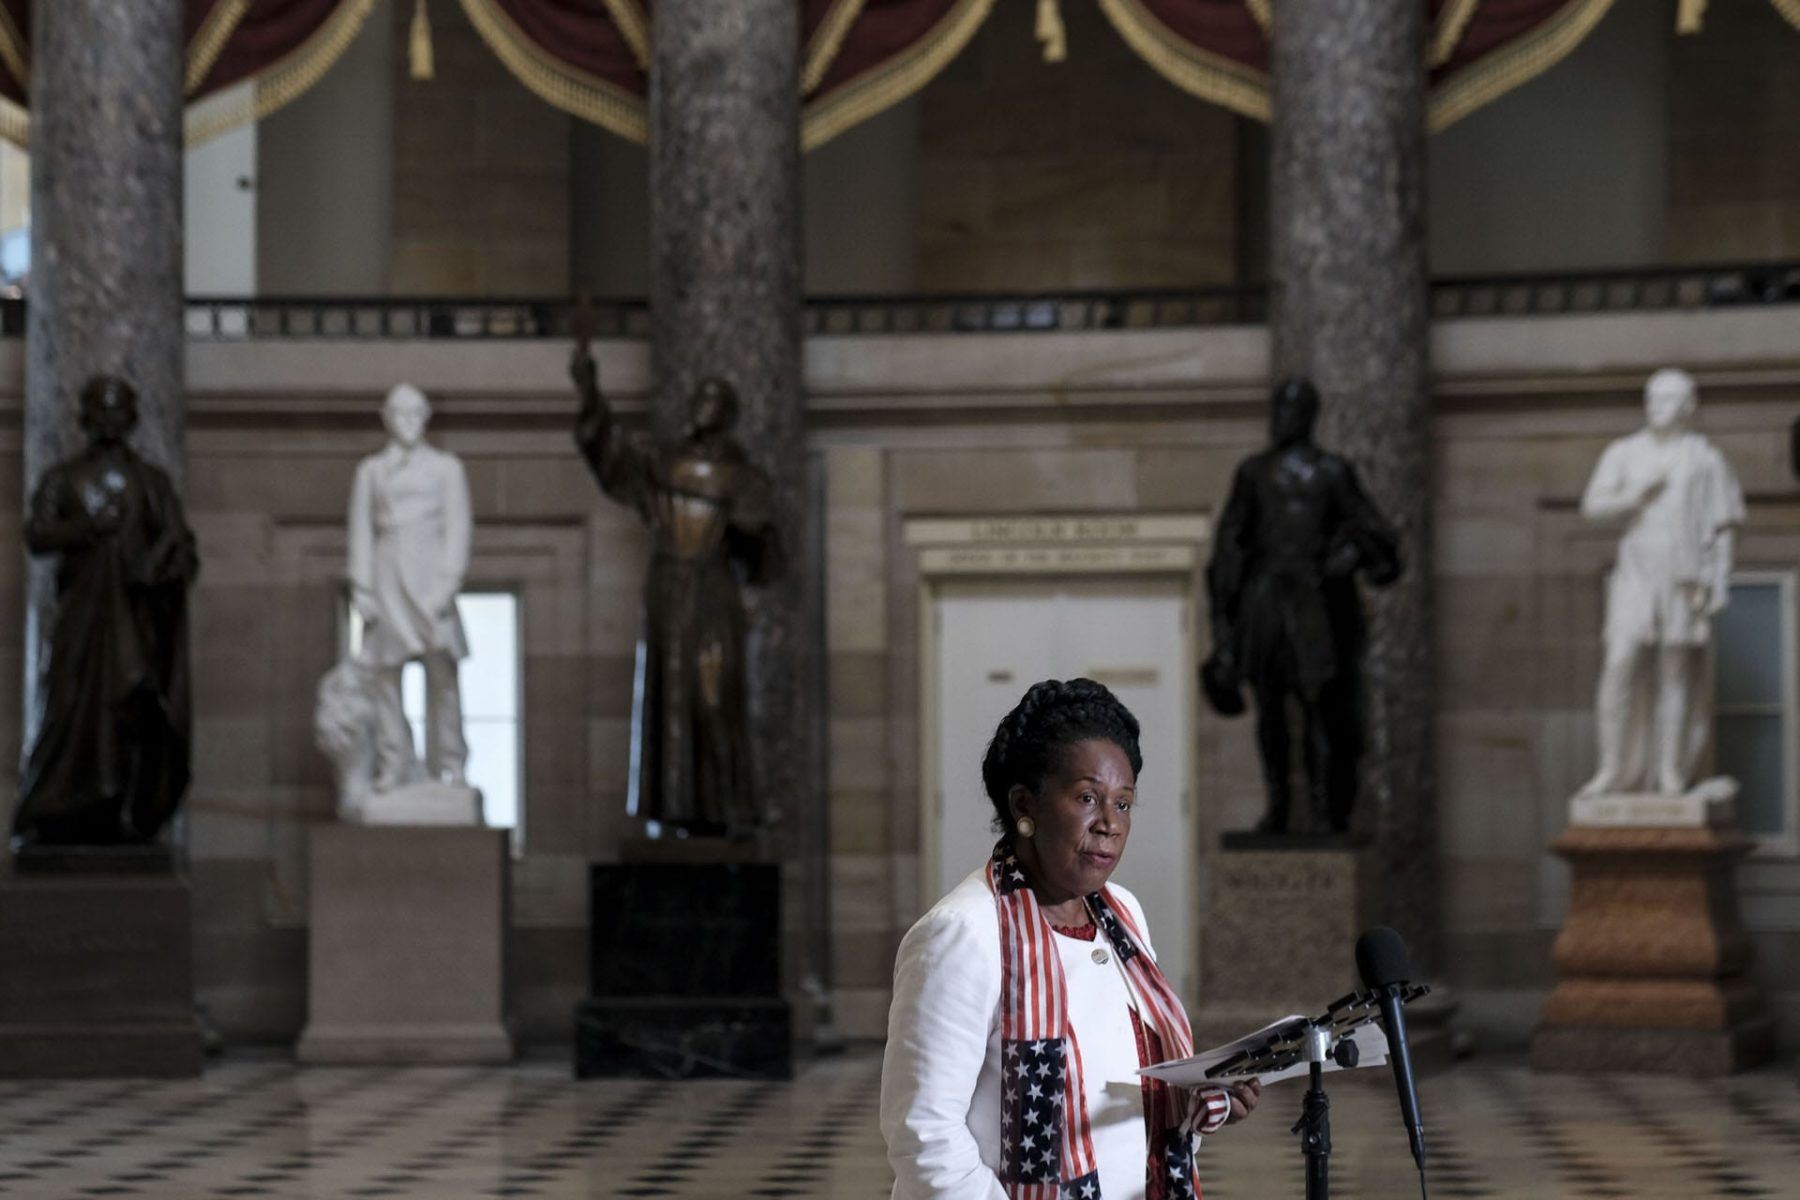 Rep. Sheila Jackson Lee in the Capitol.